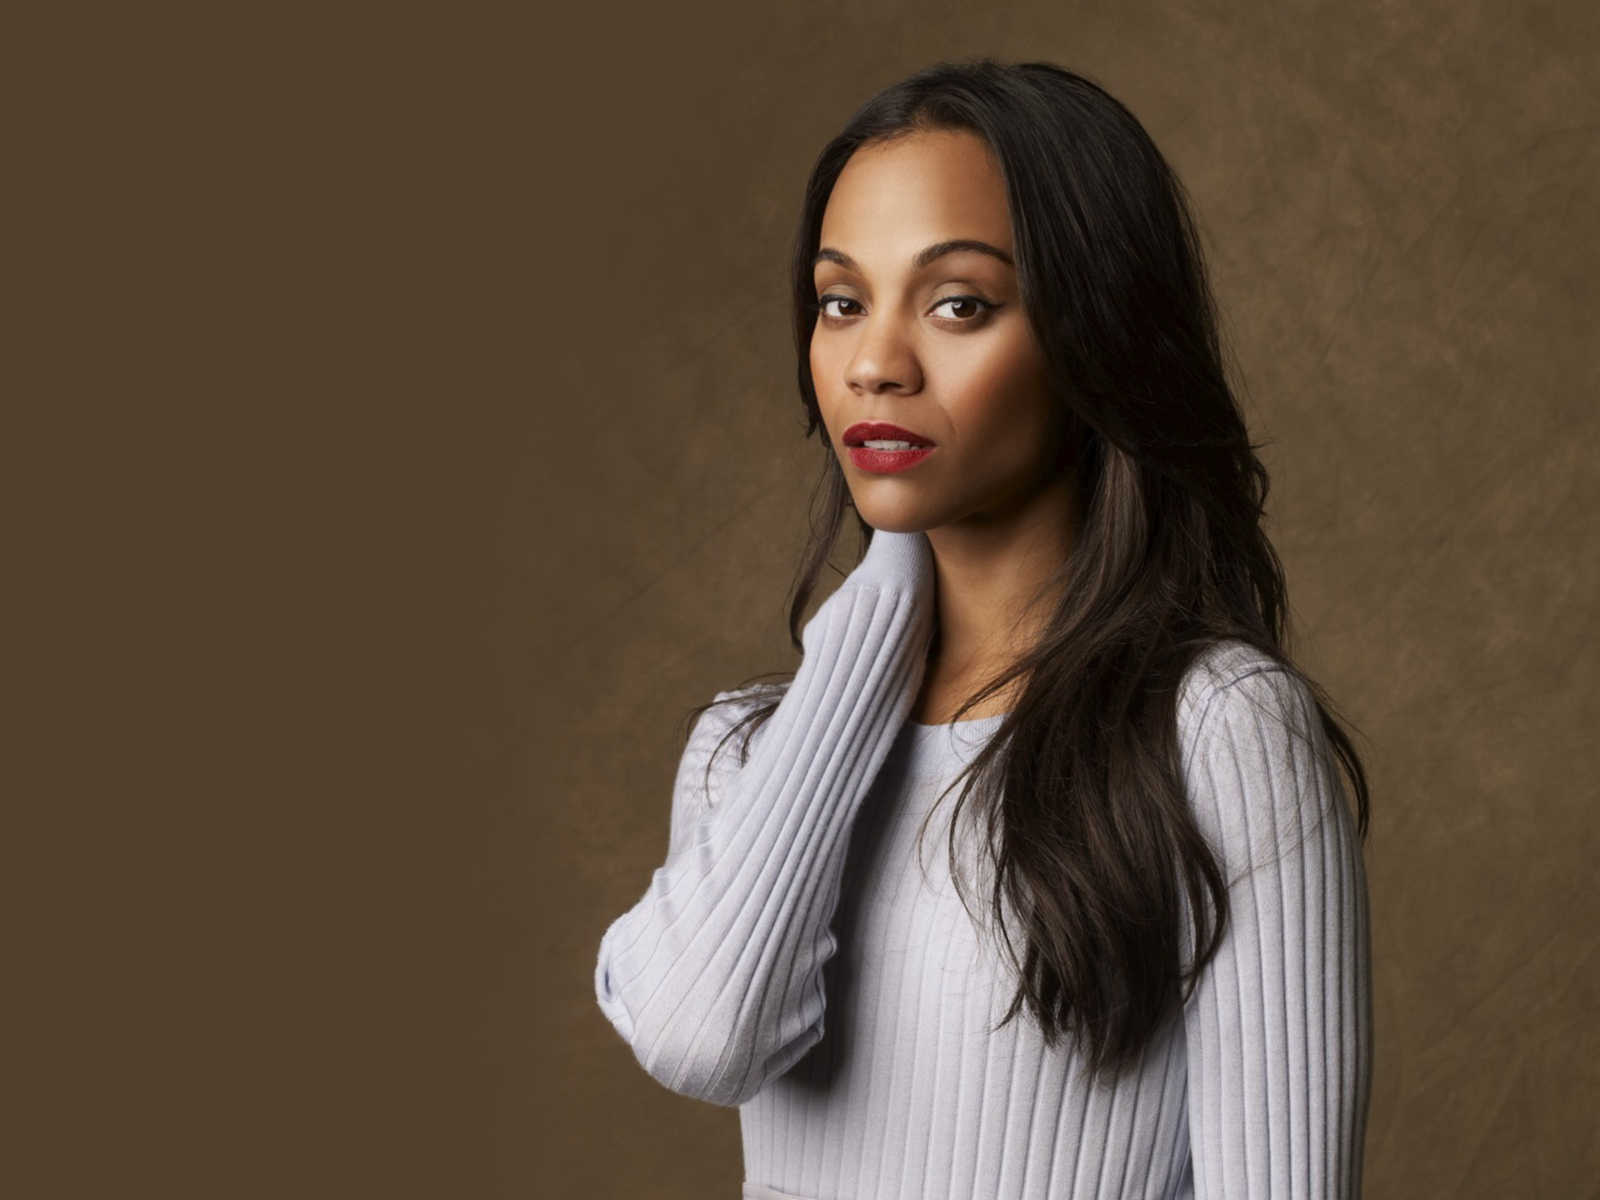 Zoe saldana latest hd wallpapers 2013 hollywood universe - Zoe wallpaper ...